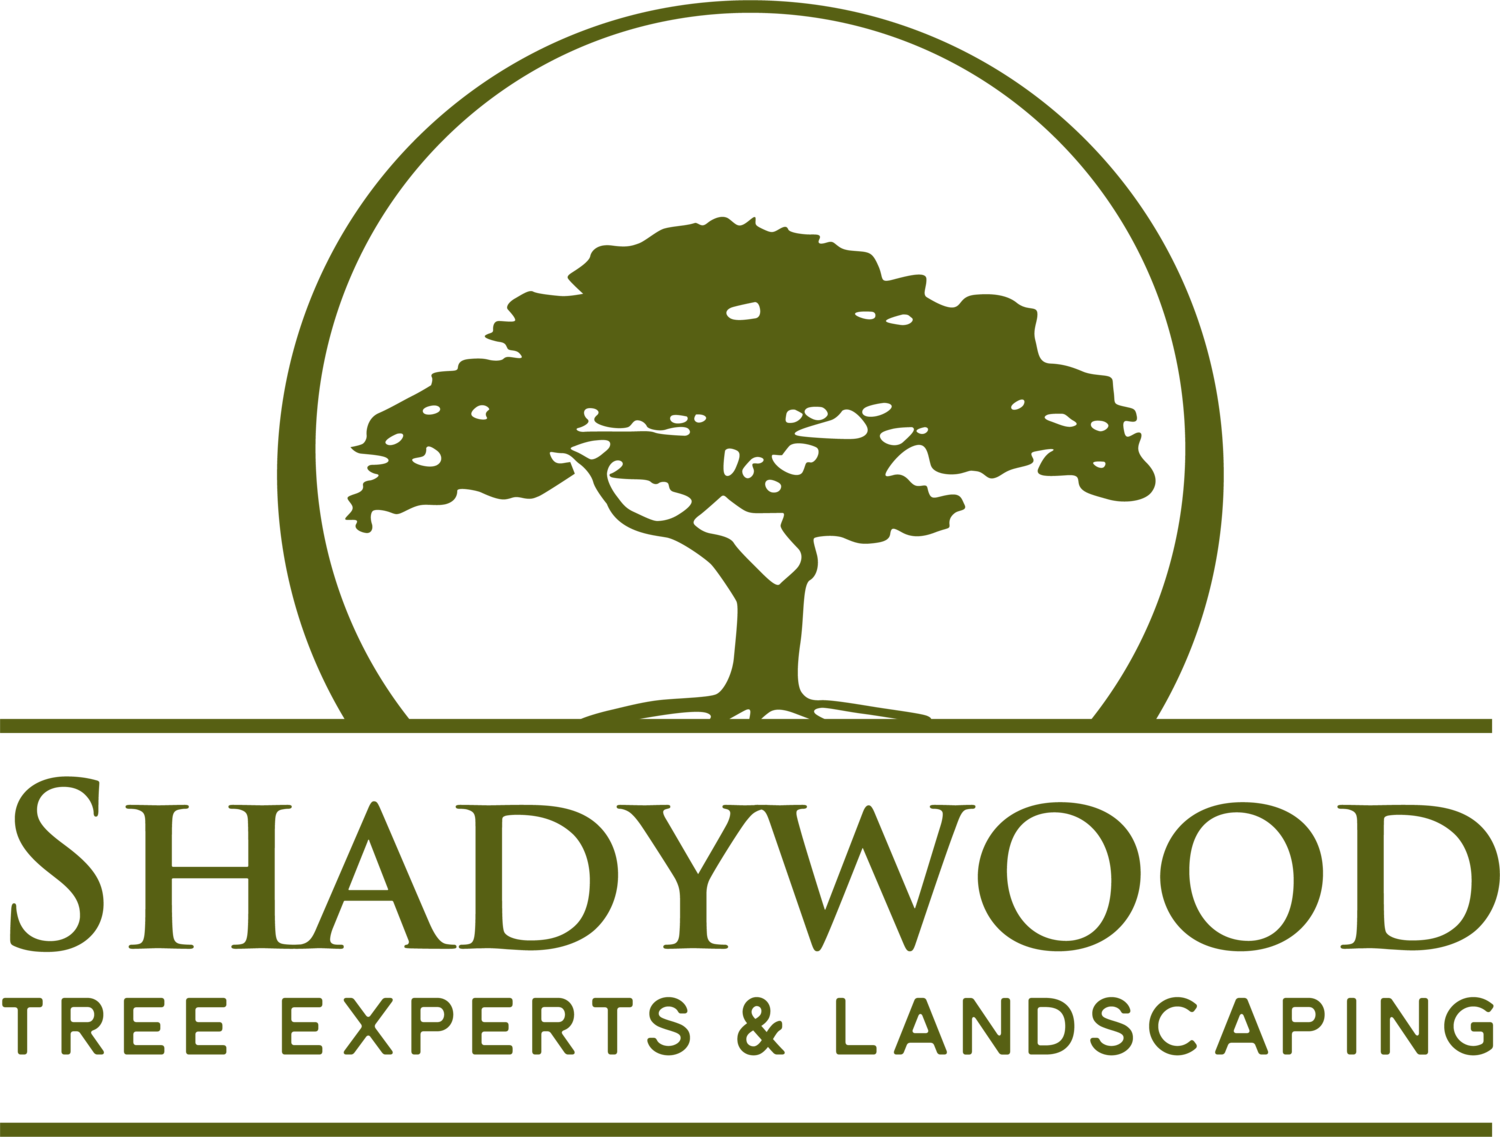 Shadywood Tree Experts and Landscaping